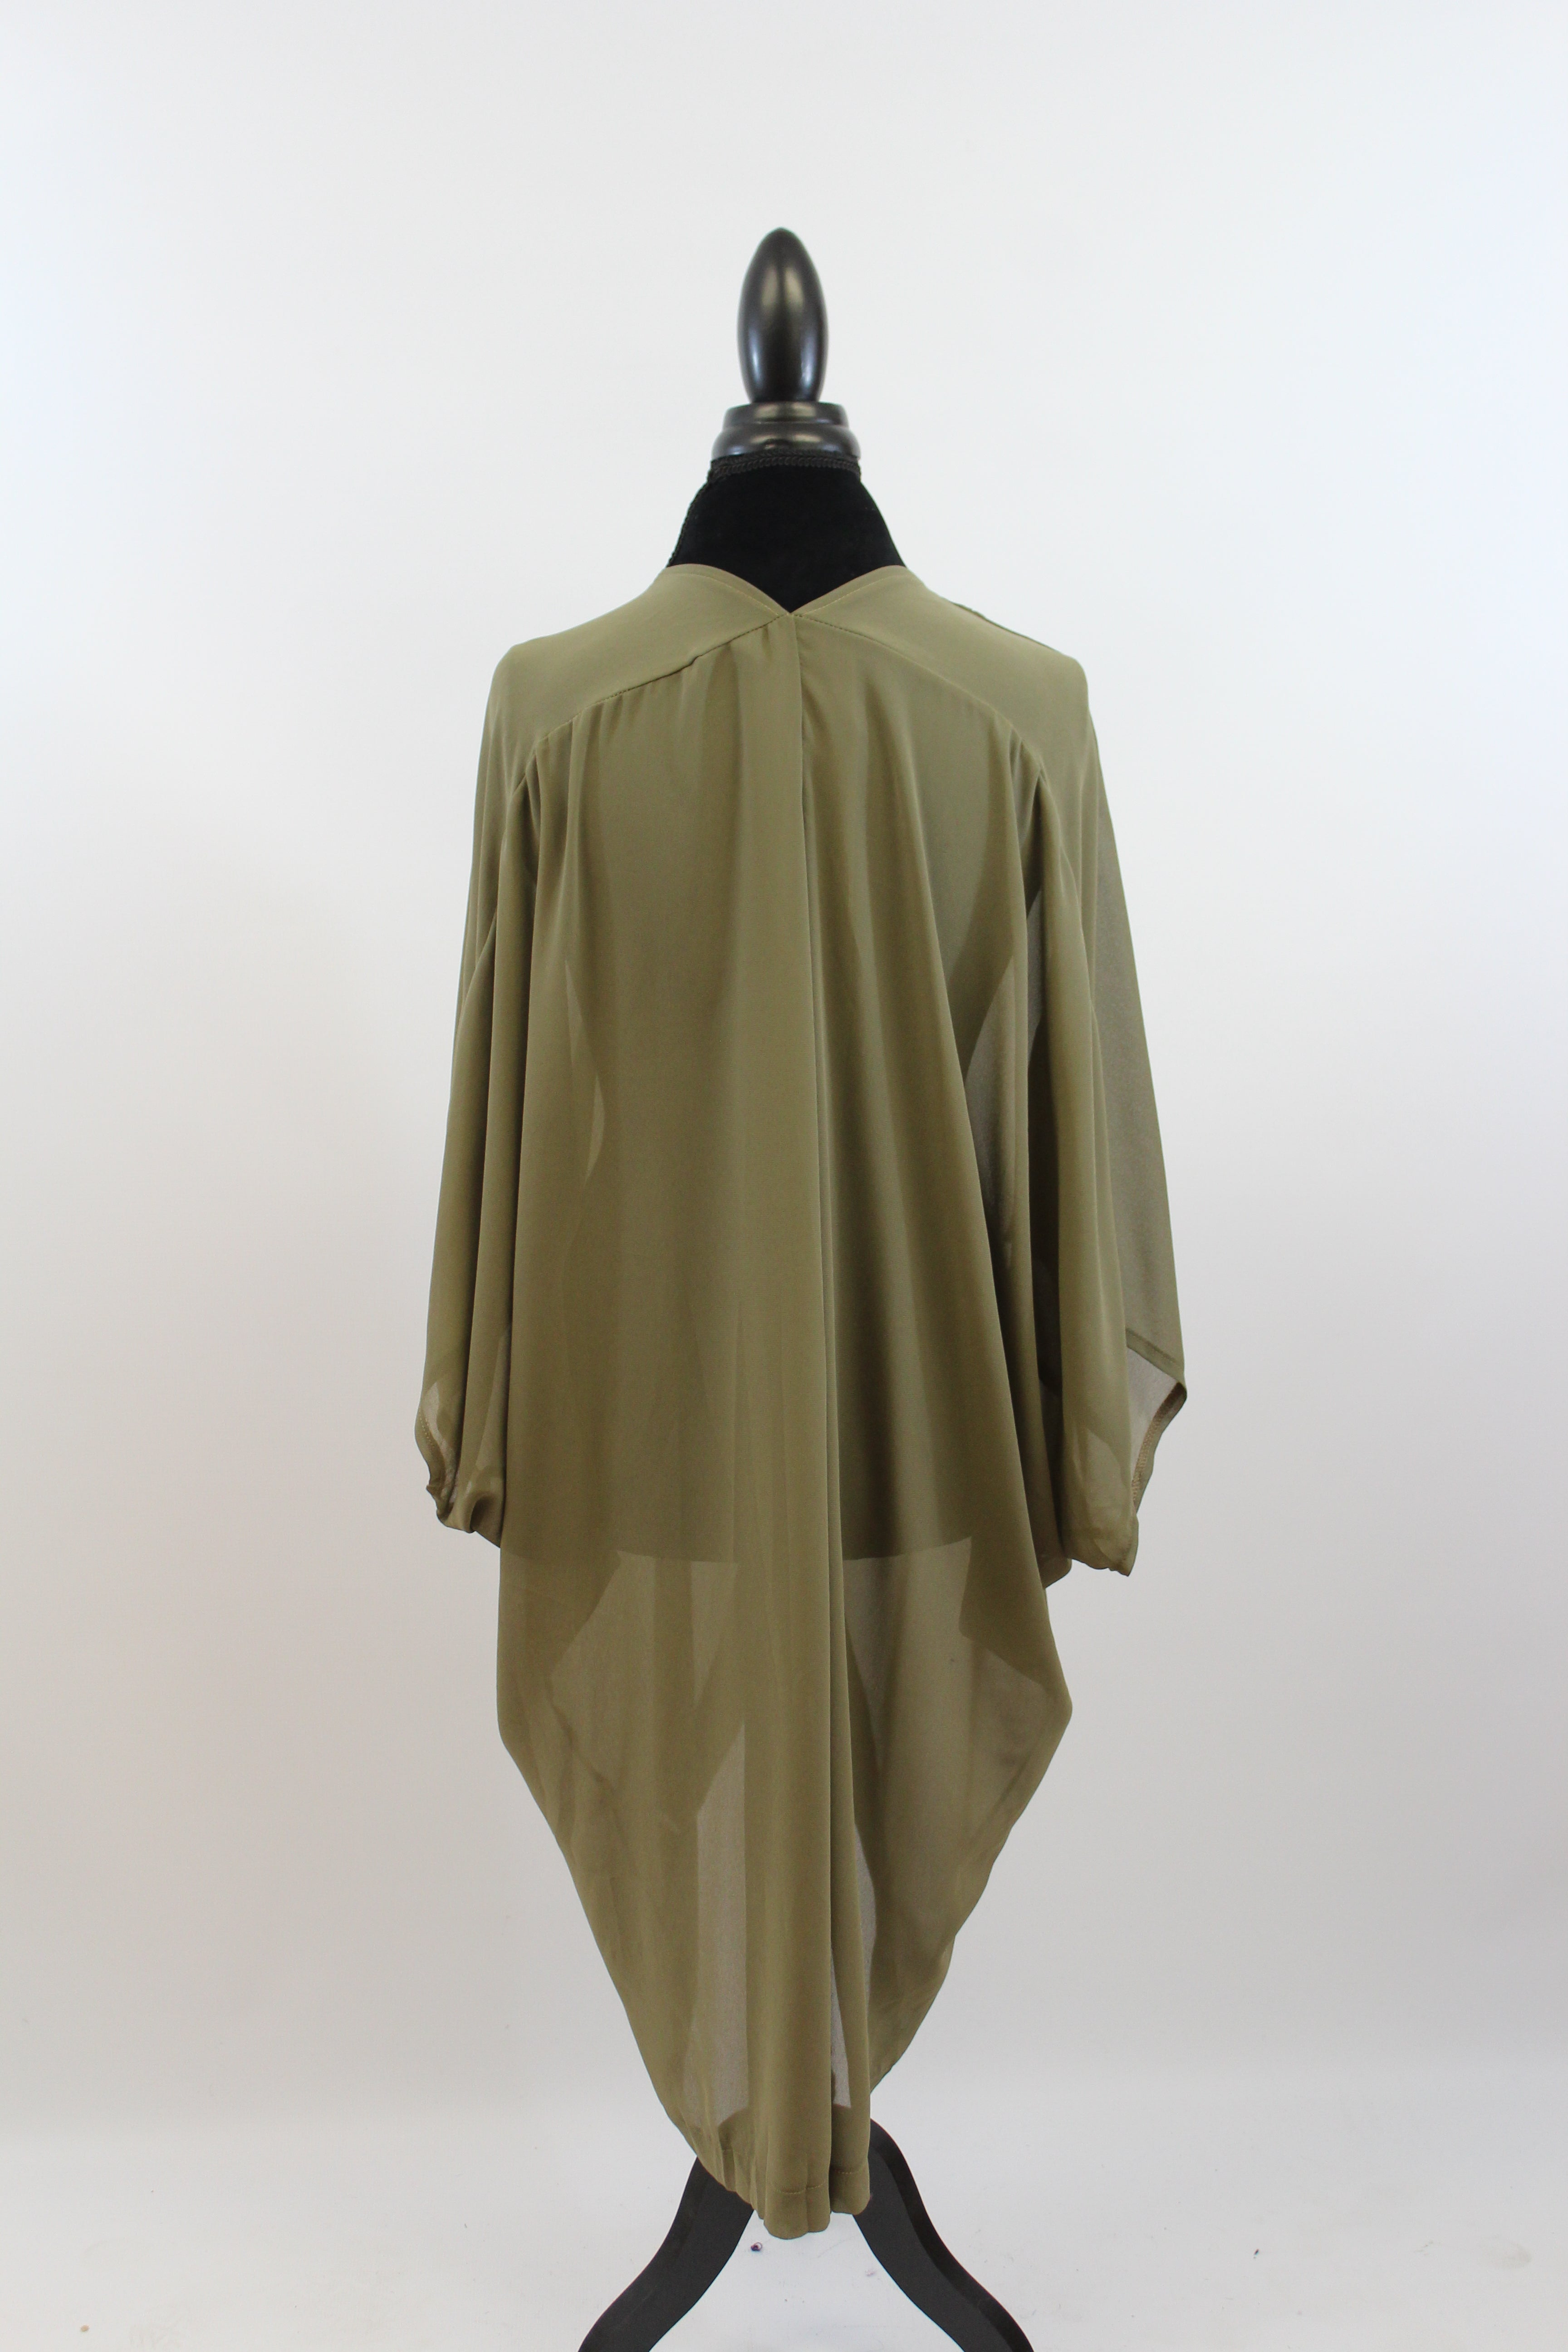 womens oversize chiffon flowy long dolman sleeve button layering piece plus size black army green taupe nordstrom lane bryant target amazon